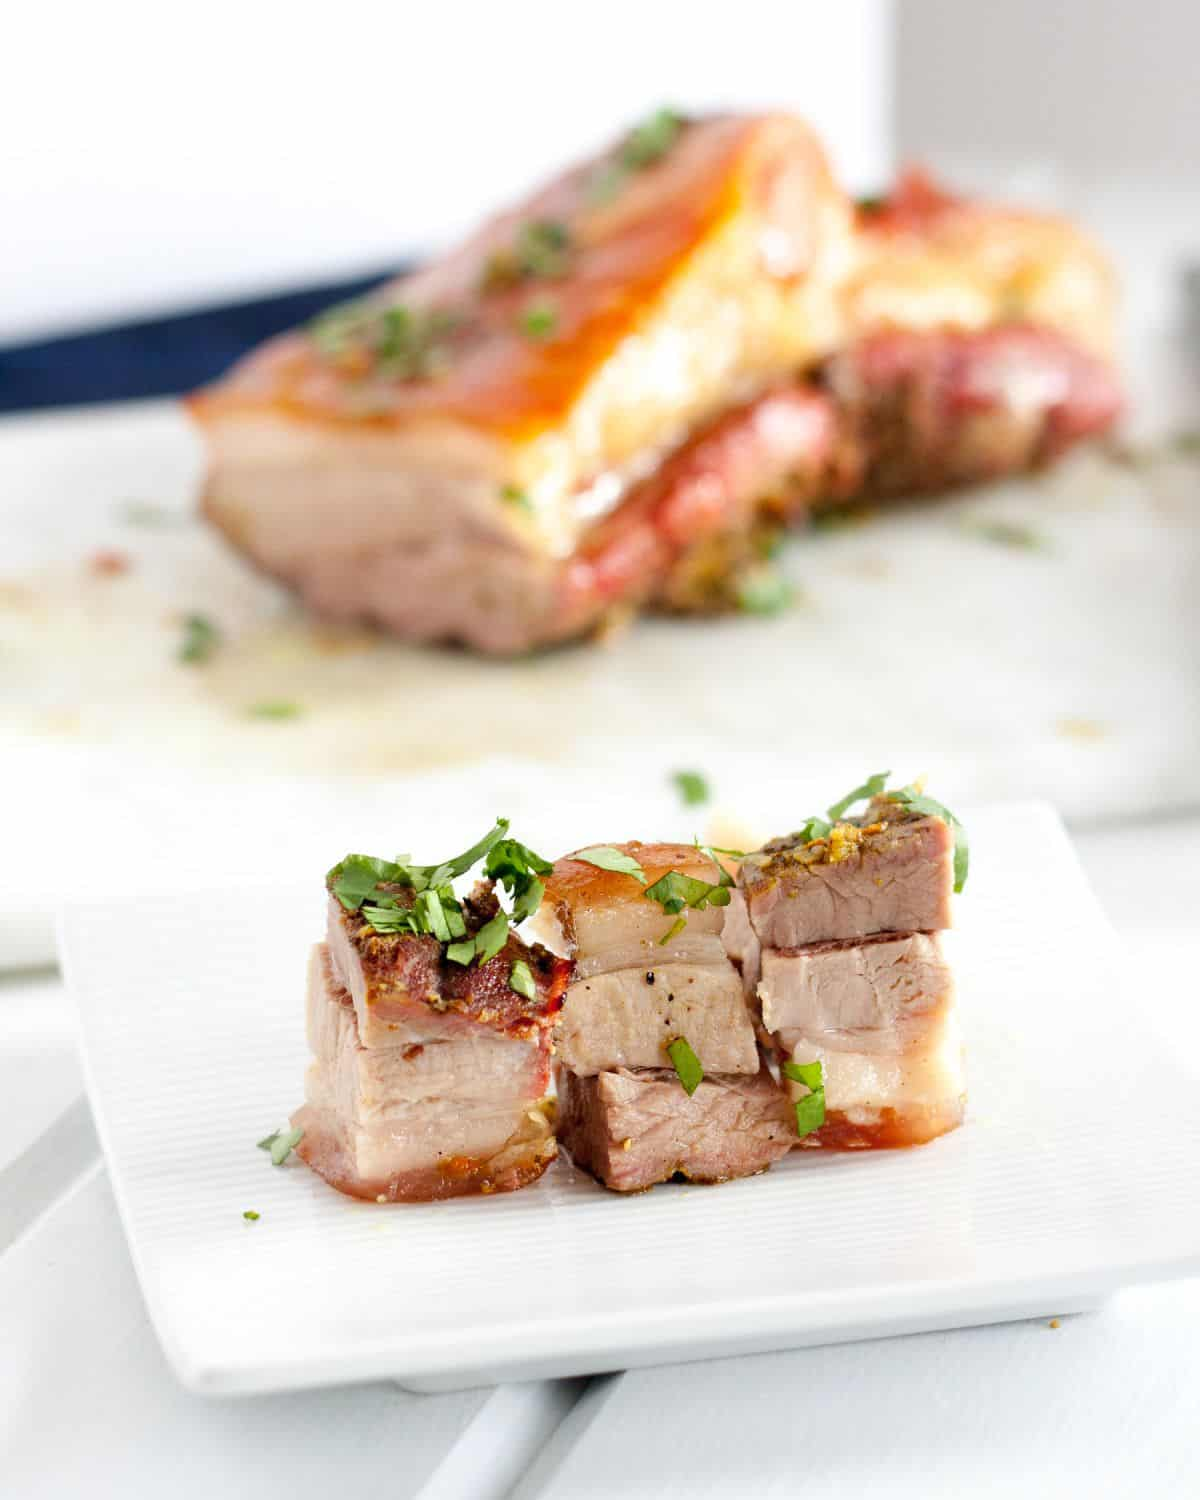 Crispy Pork Belly is easy to make in the oven. This recipe has a beautiful blend of flavors like tumeric, garlic, and cinnamon, so the leftovers are even better! Serve freshly roasted for Chinese New Year or cut into cubes and slices and pan fry for an extra crispy treat!